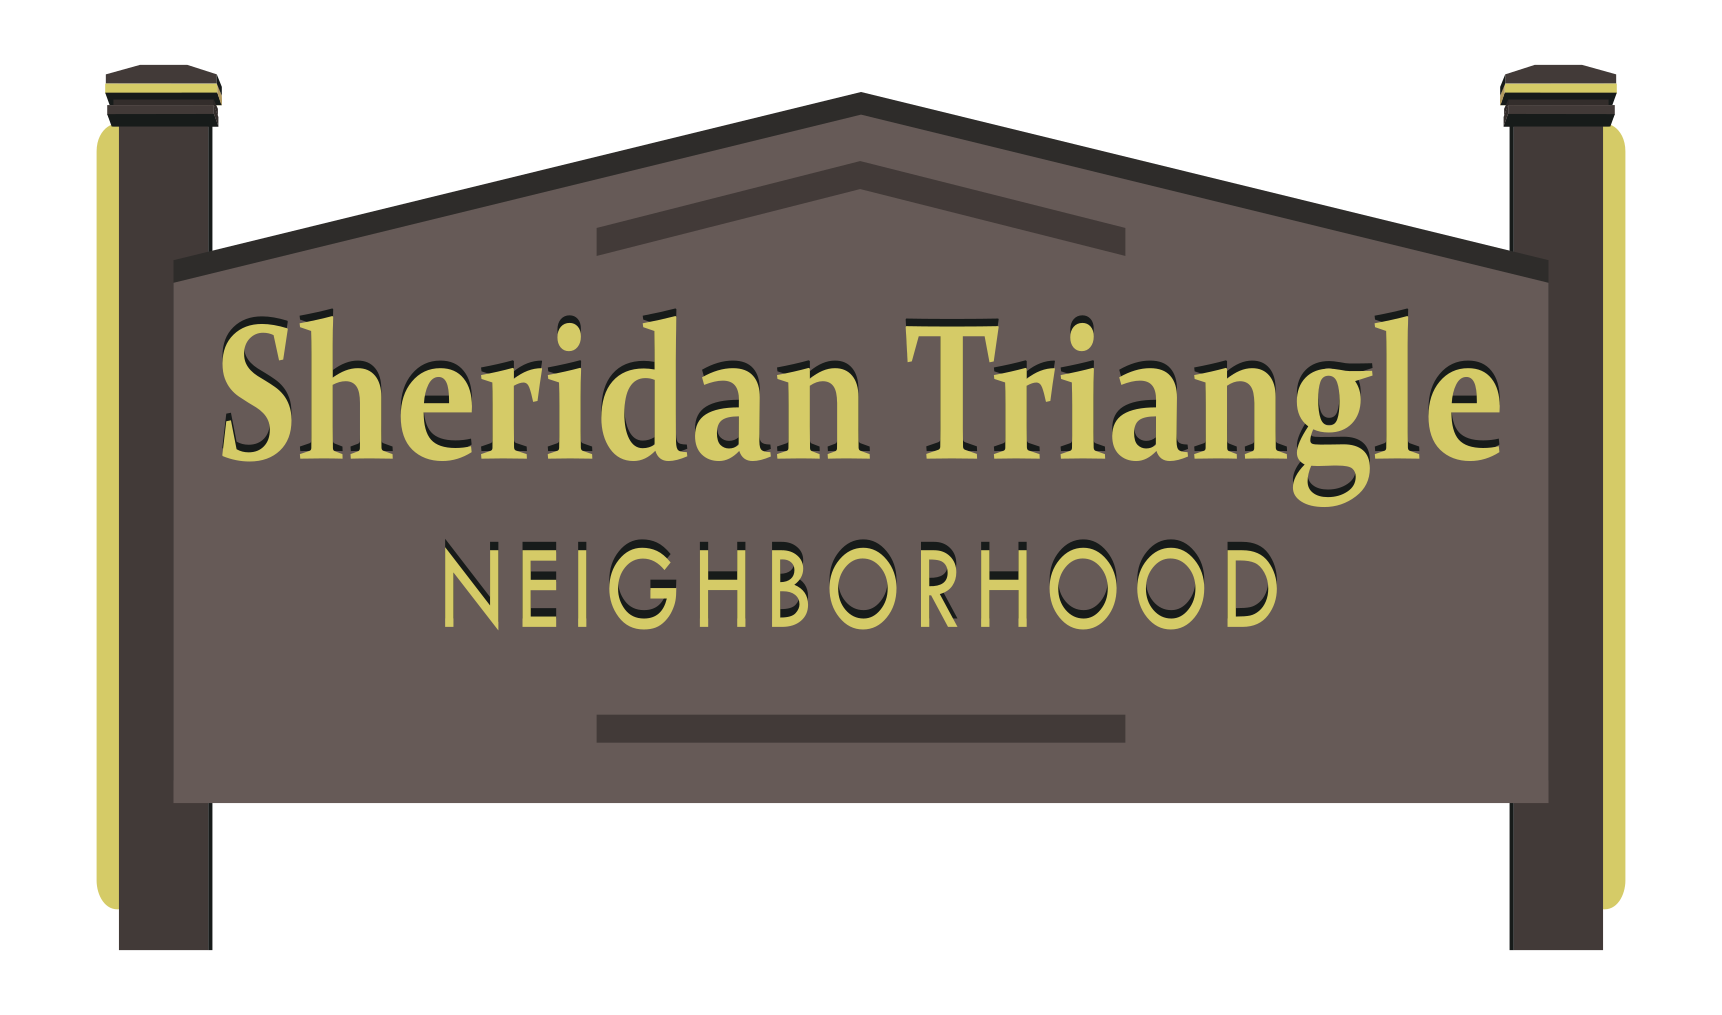 Sheridan Triangle Neighborhood sign